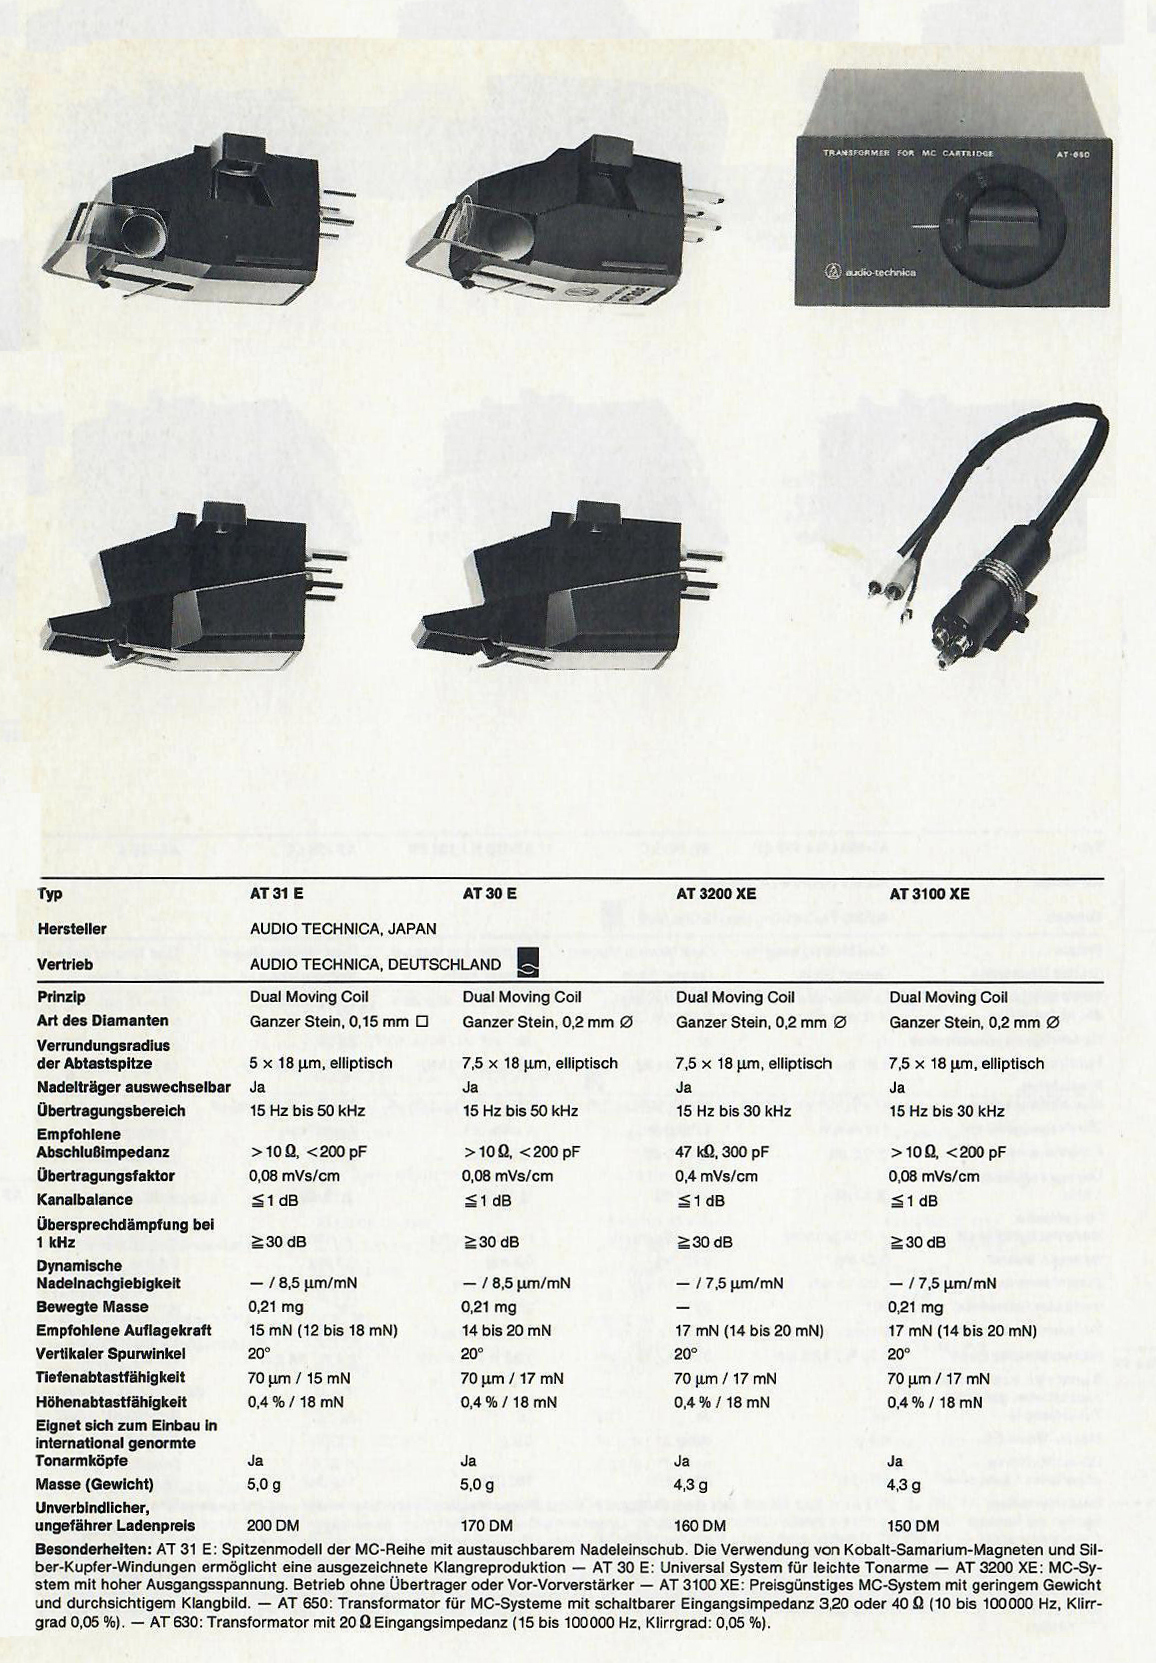 Audio Technica AT- Daten-19821.jpg